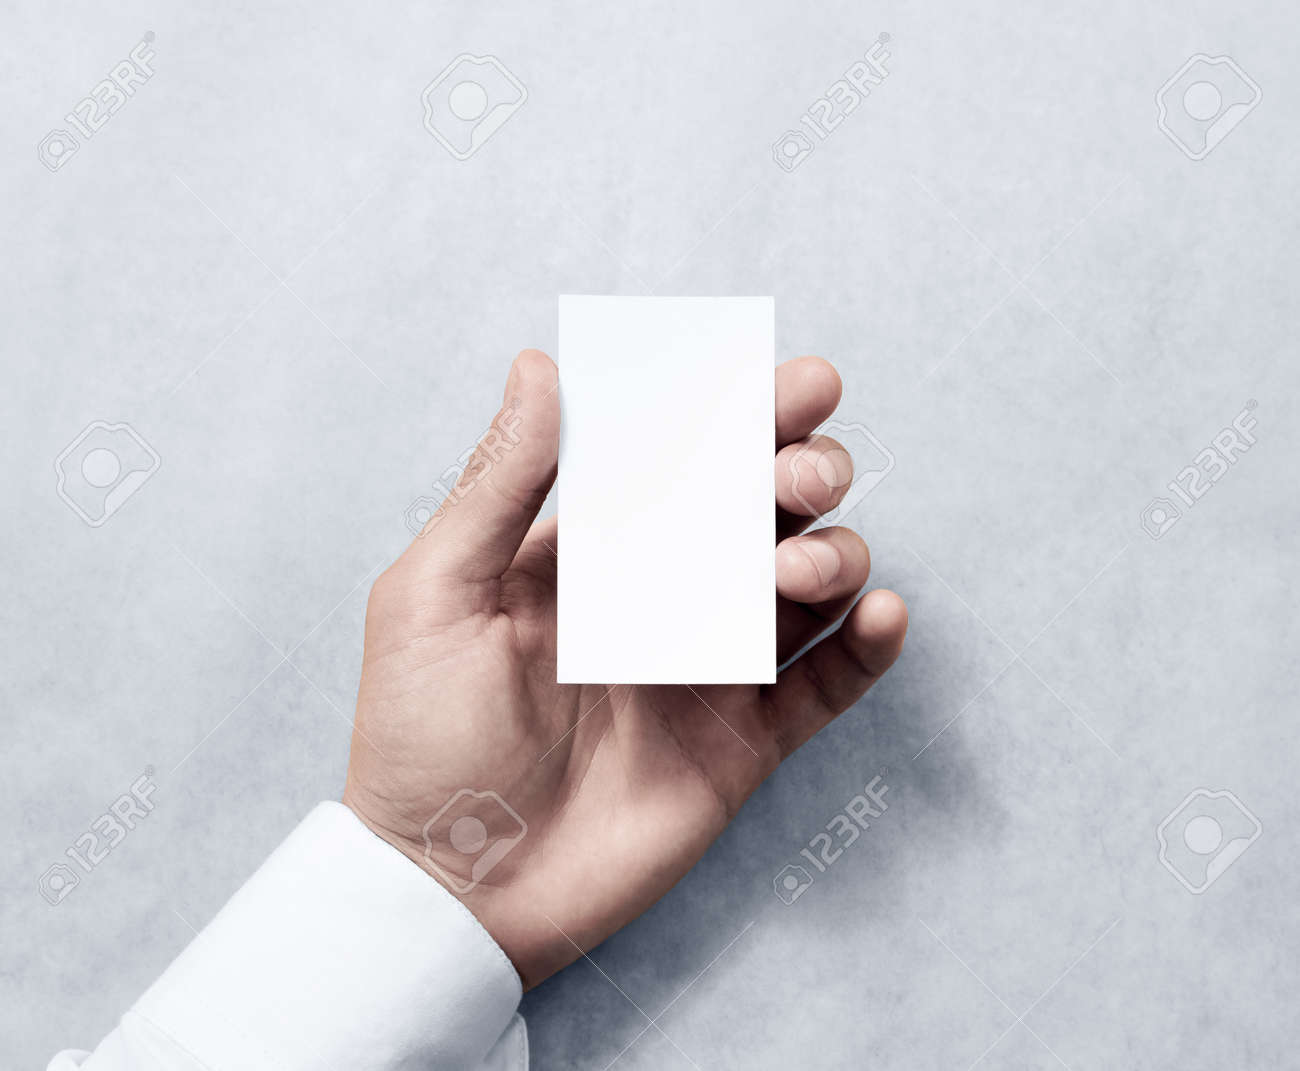 Hand Holding Blank Vertical White Business Card Design Mockup ...